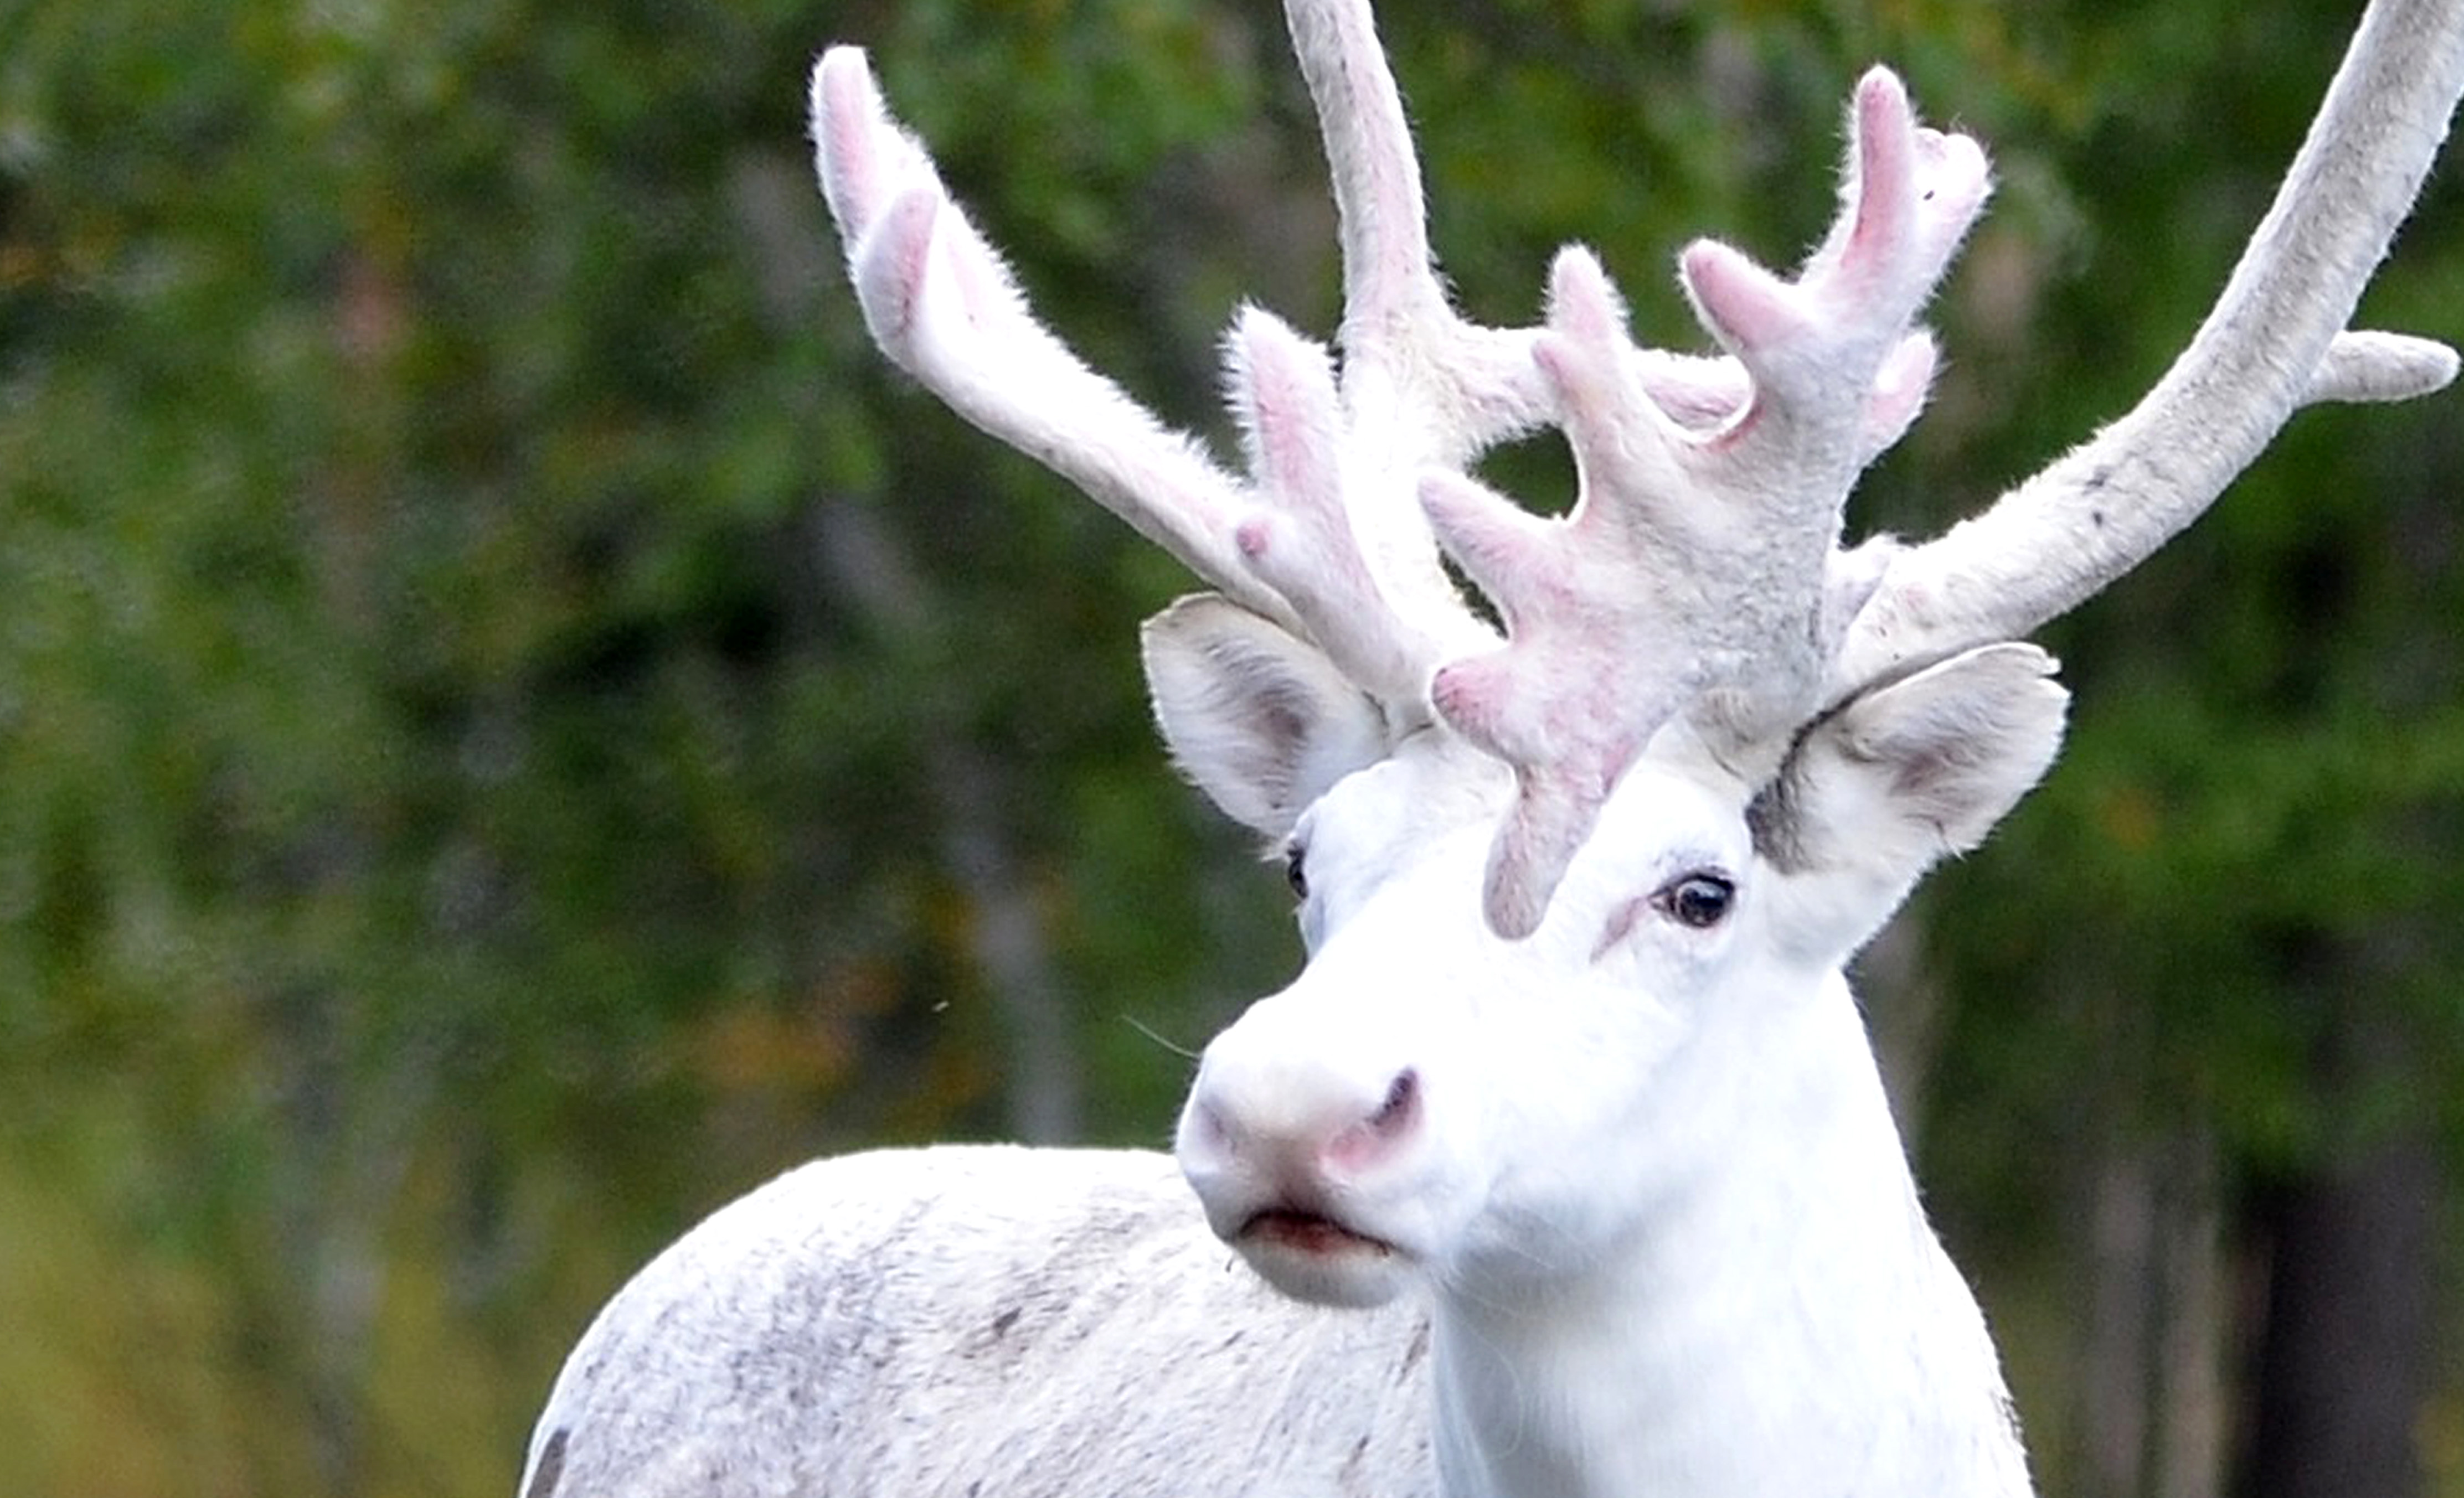 An adult male reindeer was spotted in Sweden in 2016. Credit: Caters